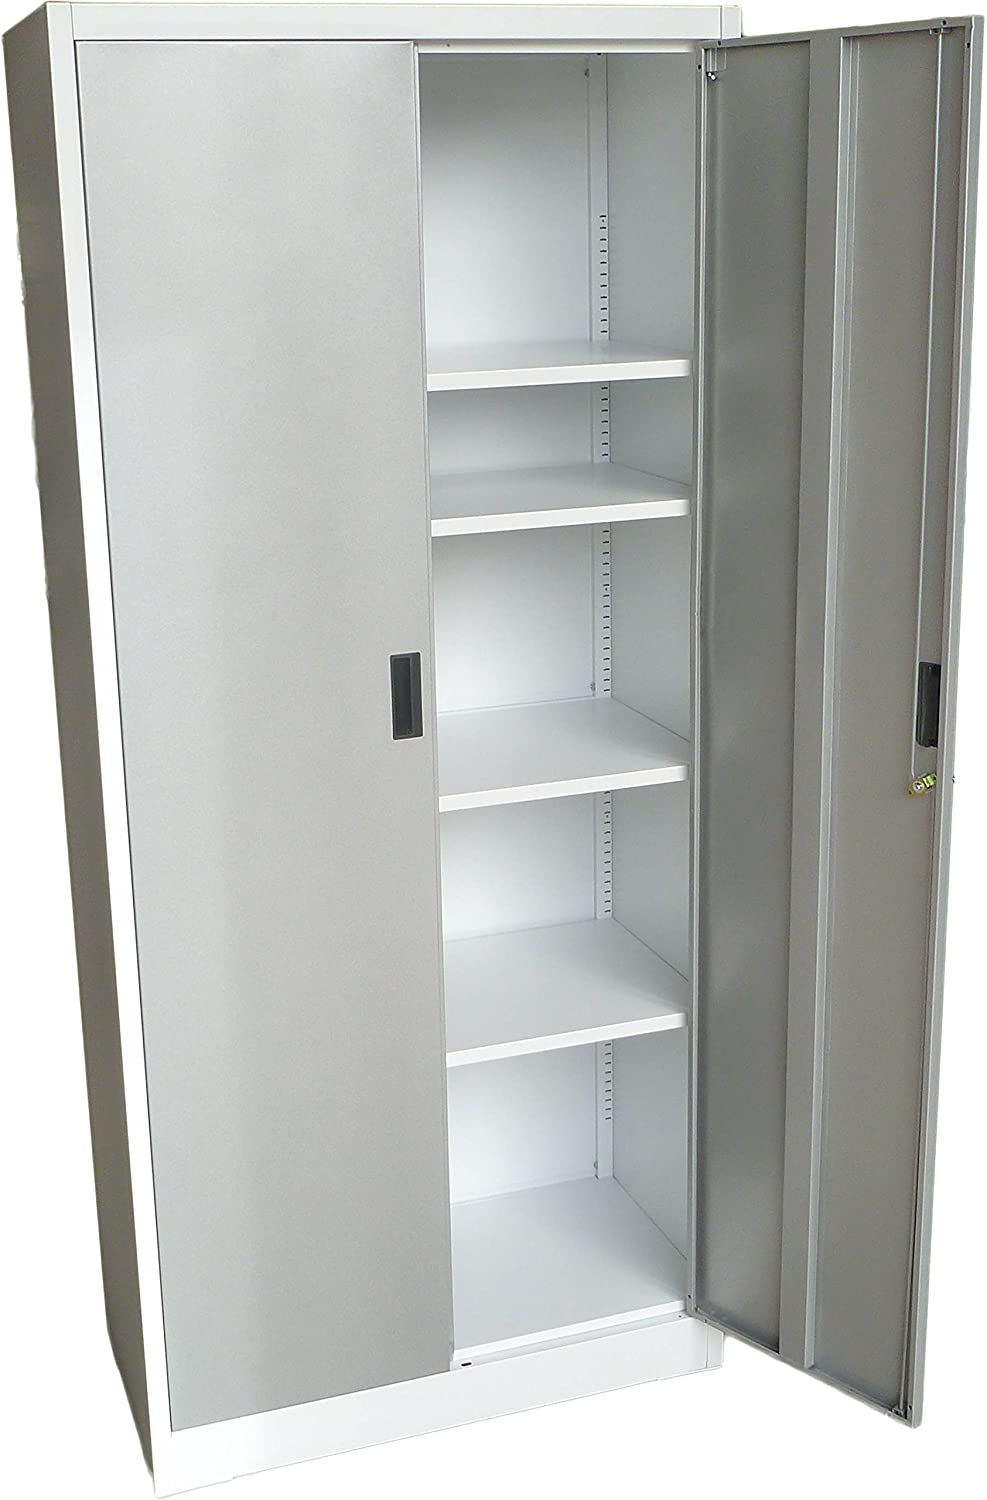 "Fedmax Steel Storage Cabinet 71"" Tall, Lockable Doors And Adjustable  Shelves, (choose Color) 7086"" Tall X 315"" W X 1575"" D (white)"